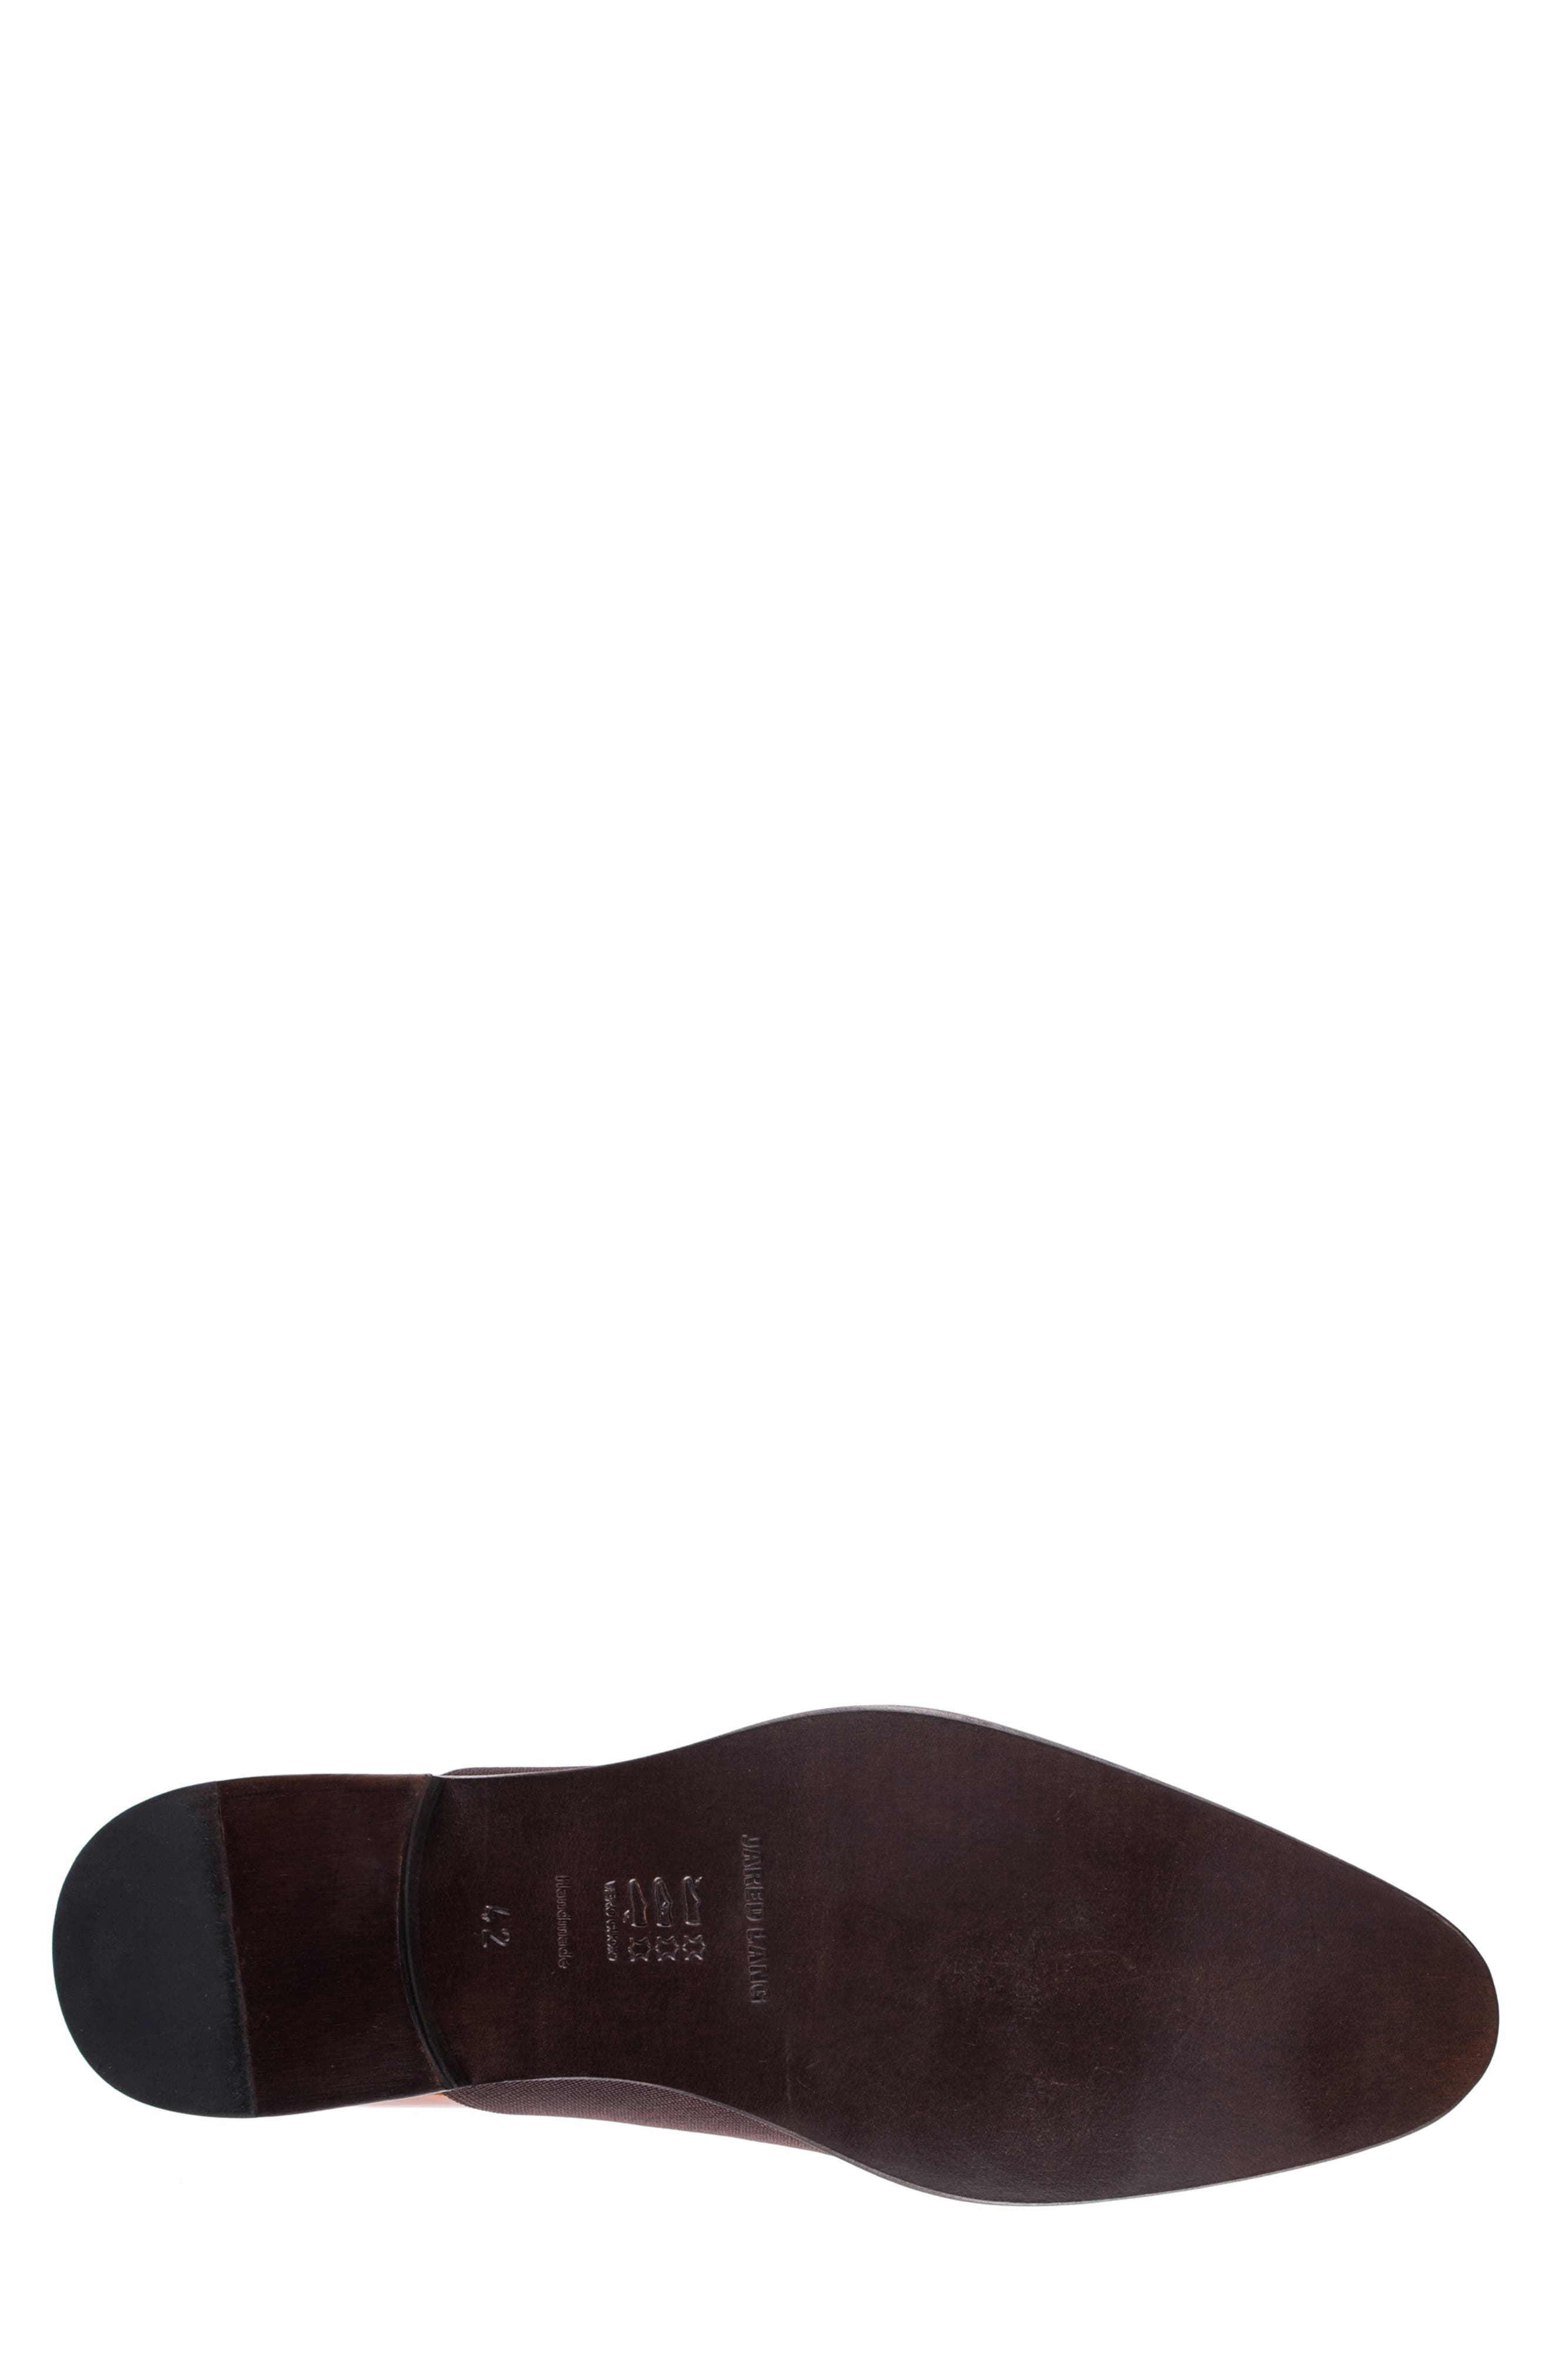 JARED LANG, Vincenzo Whole Cut Slip-On, Alternate thumbnail 6, color, BROWN LEATHER